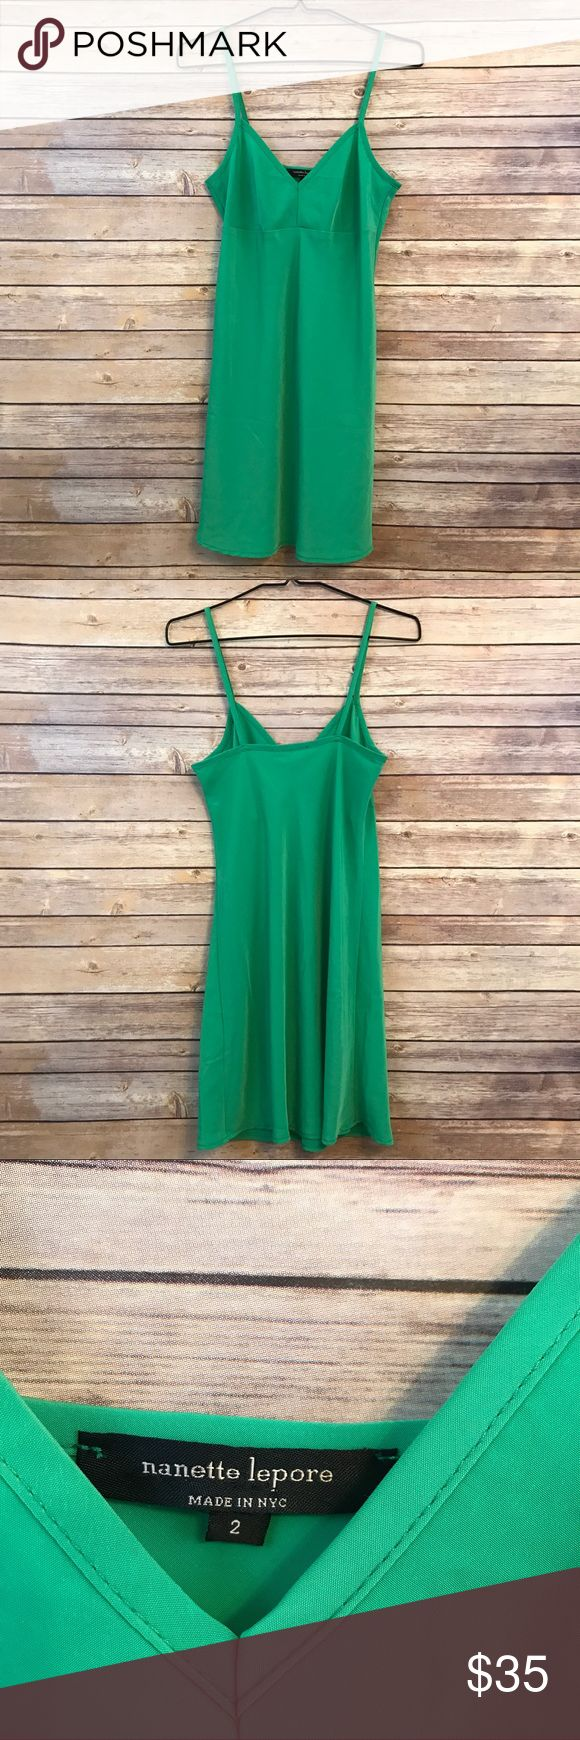 """Nanette Lepore green cami slip dress size 2, 207 This pretty green cami dress by Nanette Lepore is perfect for summer, it's a mini dress. It is marked a size 2 US and measures 16.5"""" flat across the bust 15.5"""" flat across the waist and is 33"""" long. In good overall condition, straps have been sewn up slightly to shorten, could be removed with cutting the stitching. No other flaws seen, light overall wear. See all images. Nanette Lepore Dresses Mini"""